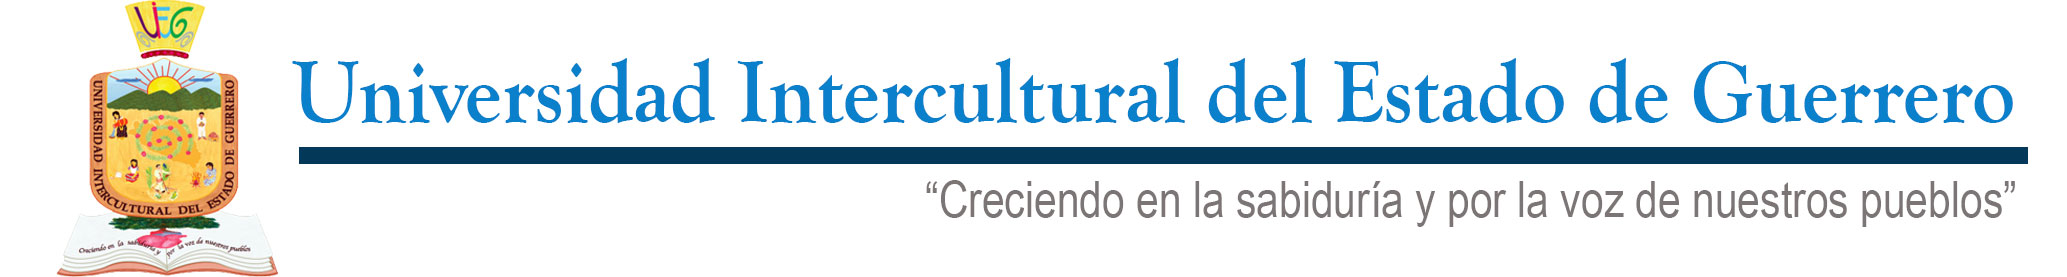 Universidad Intercultural del Estado de Guerrero